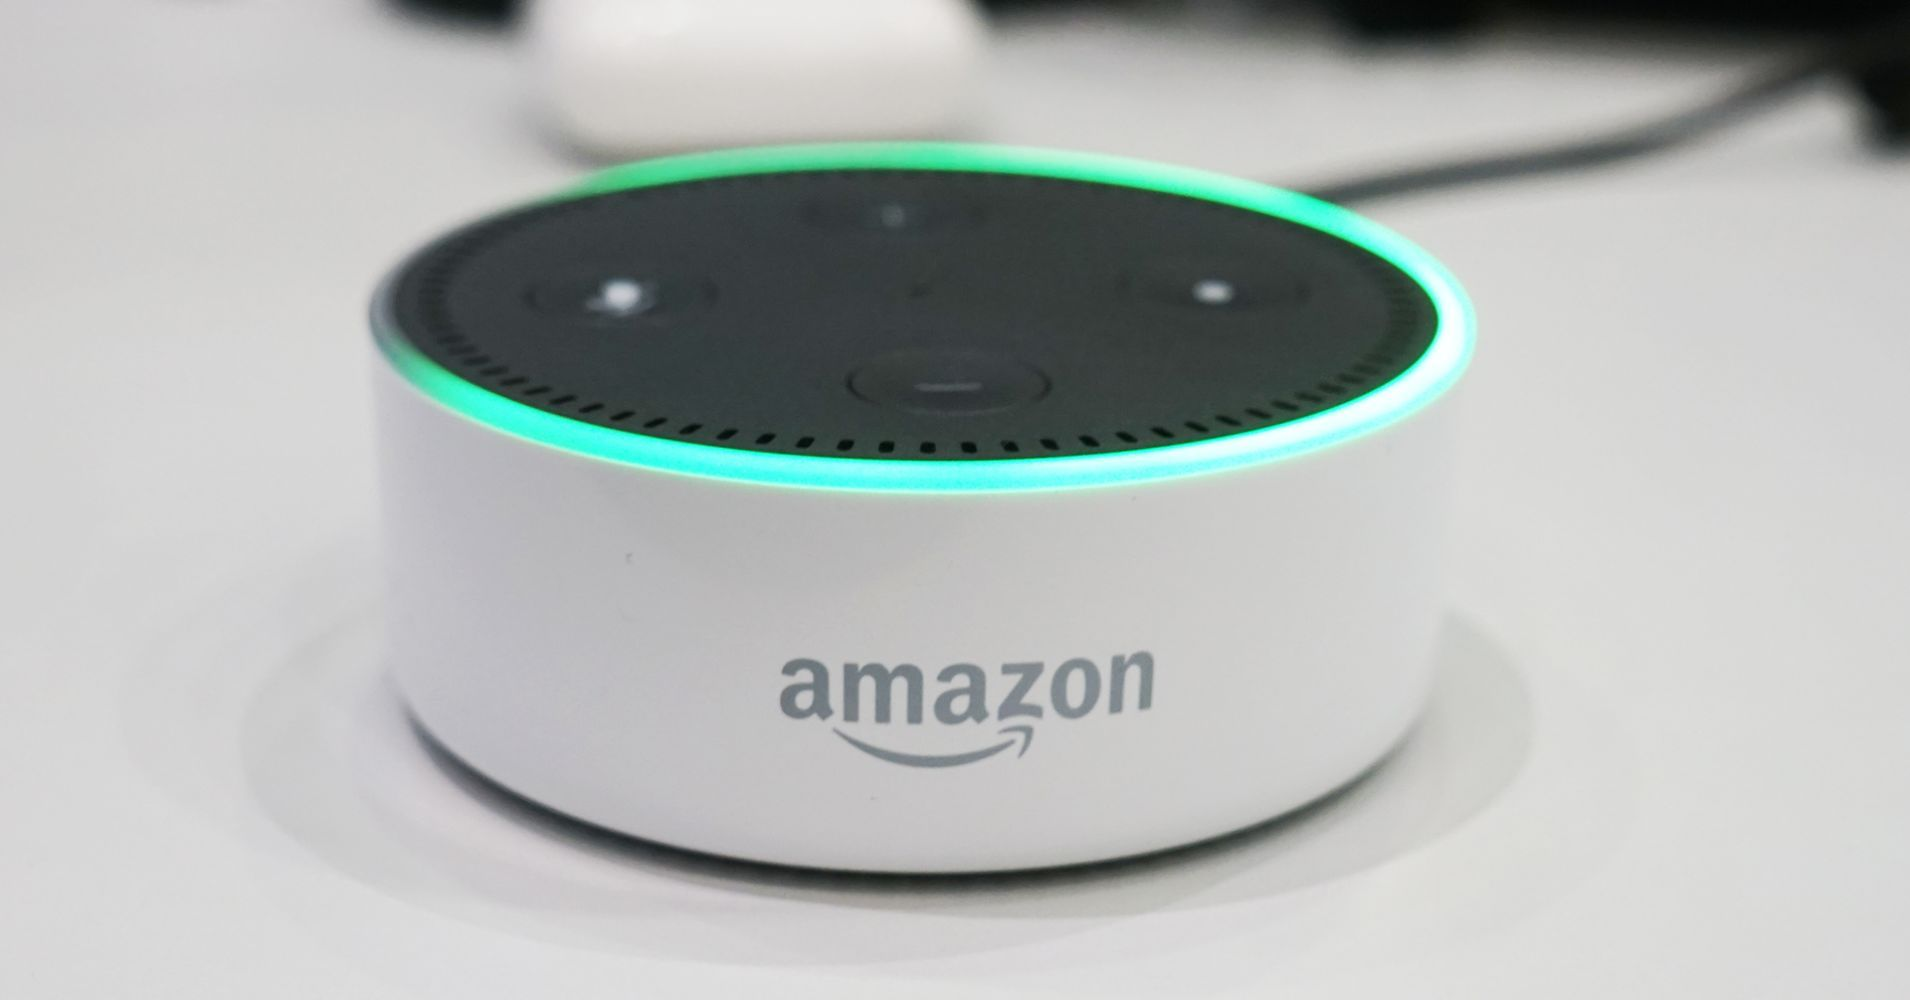 Here S What All Of The Lights On Your Amazon Echo Mean And How To Turn Them Off Amazon Echo Amazon Amazon Echo Tips